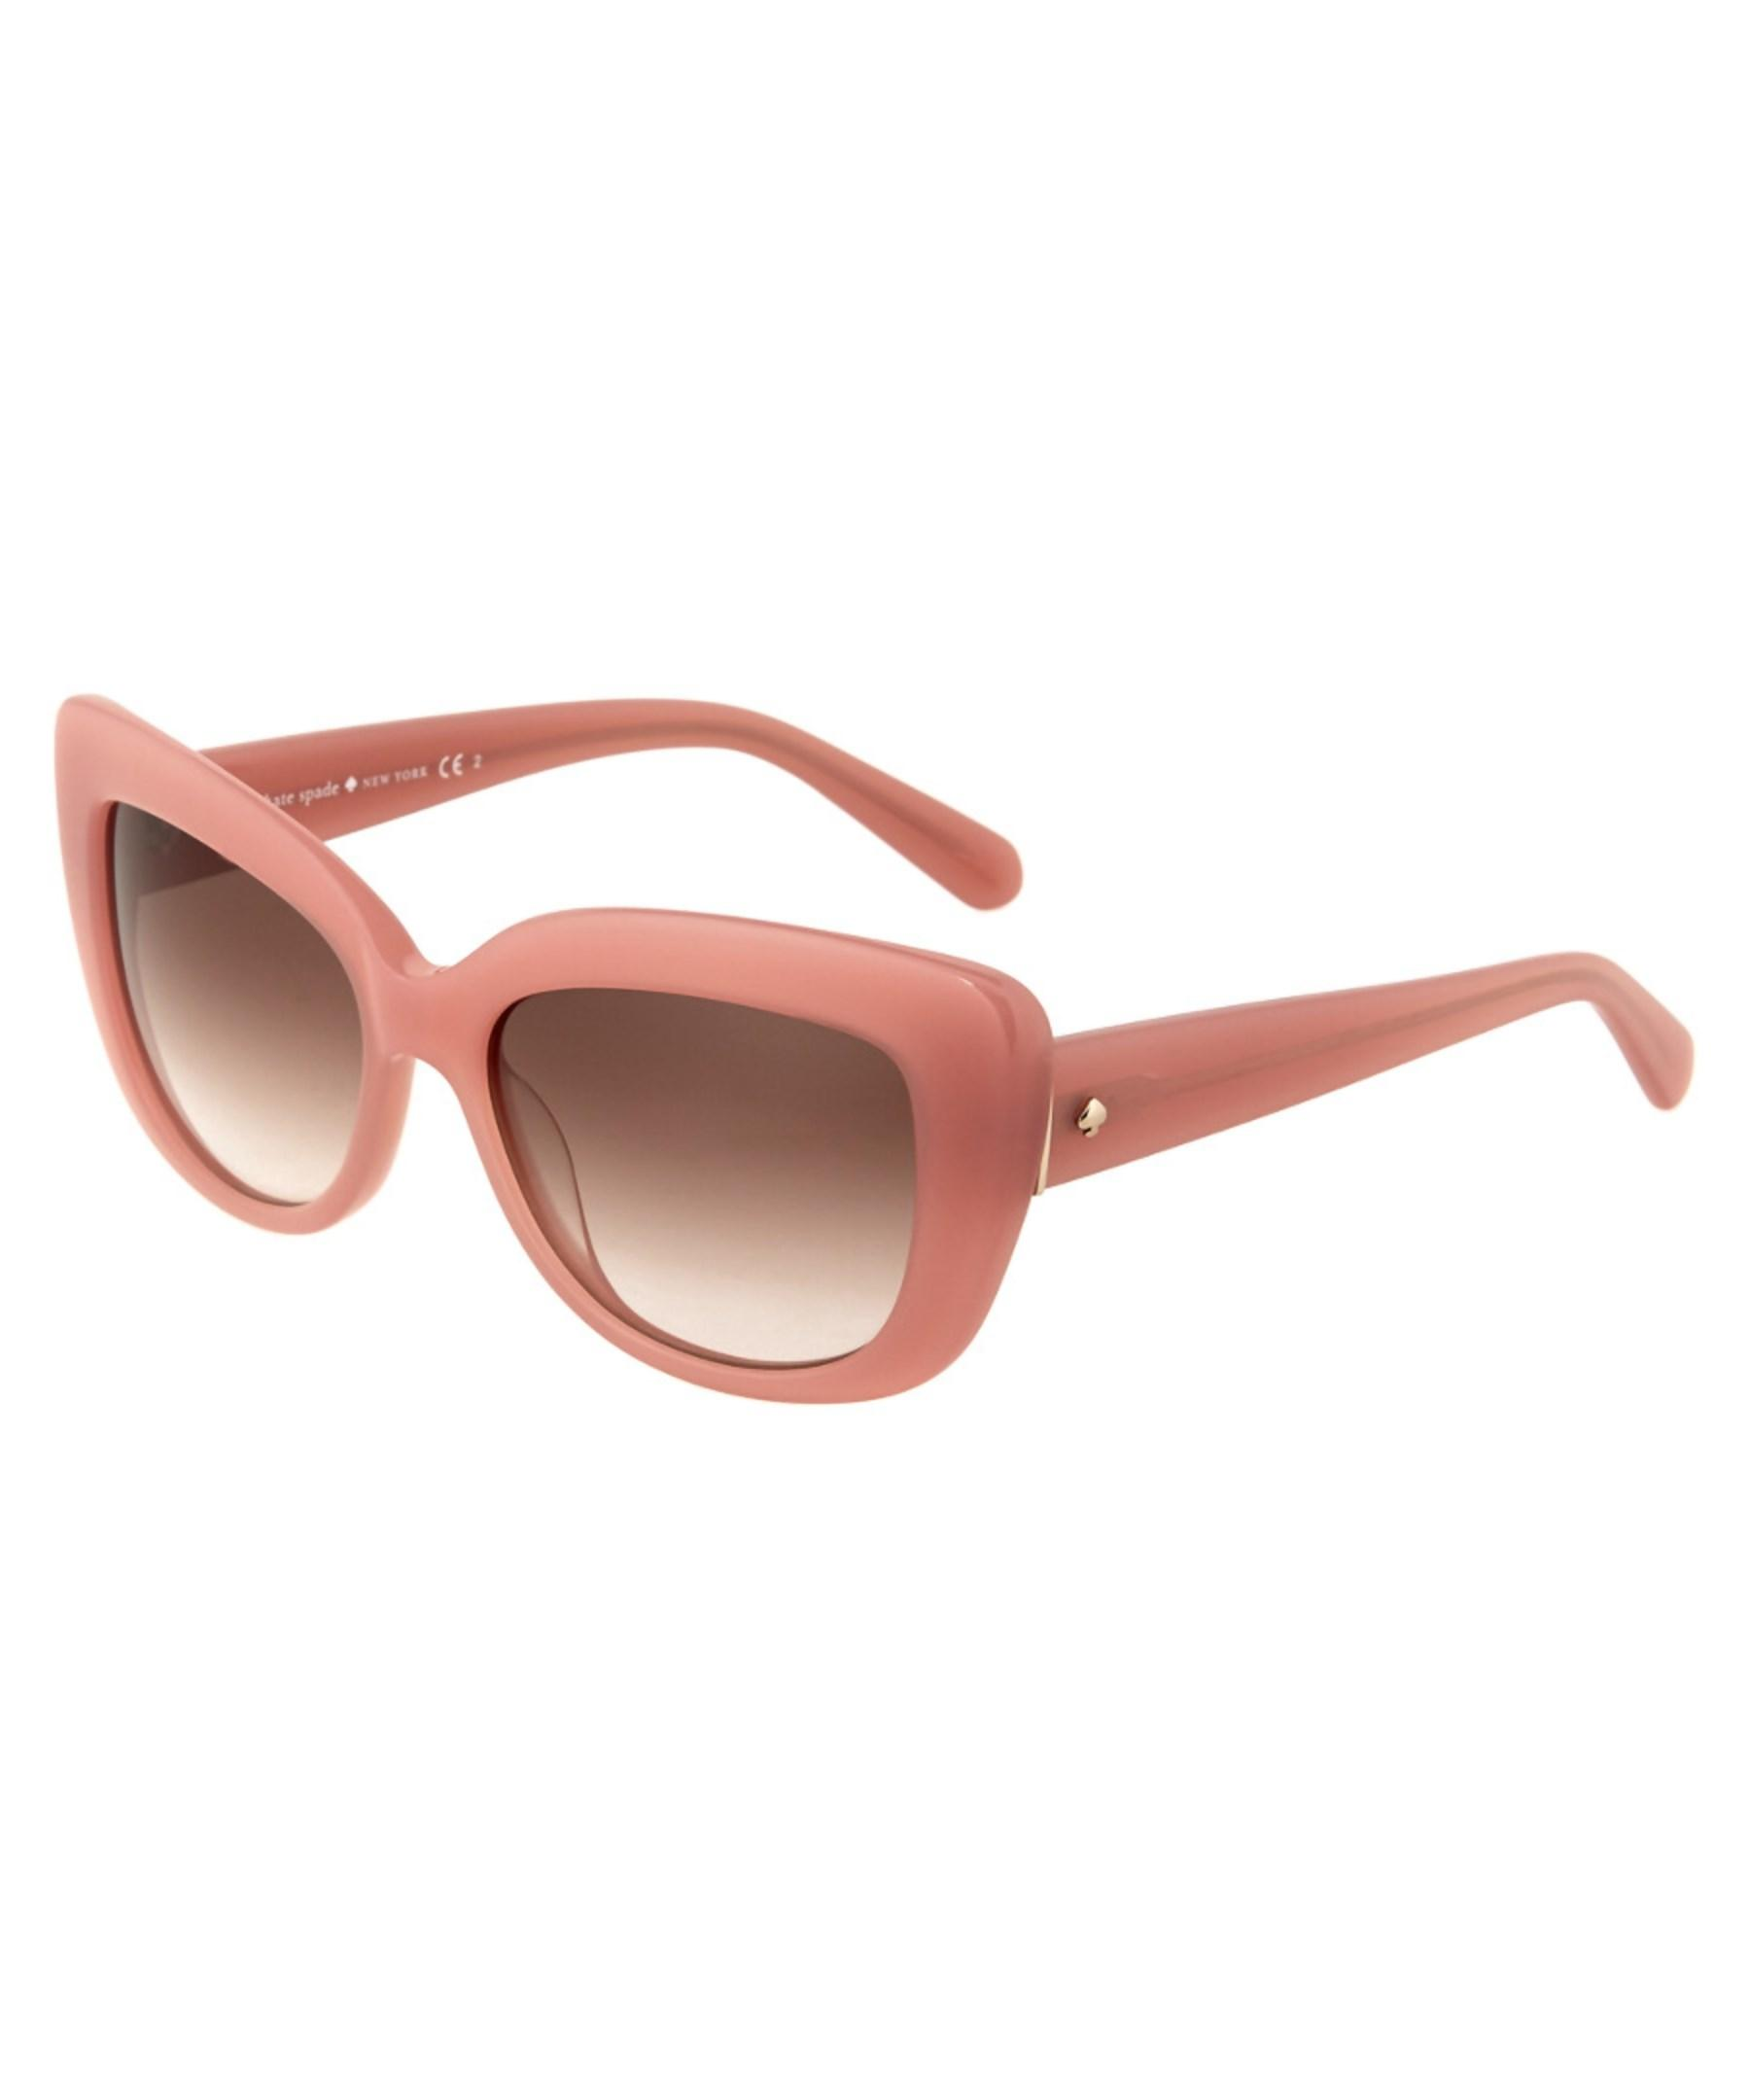 Kate Spade New York Women S Ursula Sunglasses In Pink Lyst